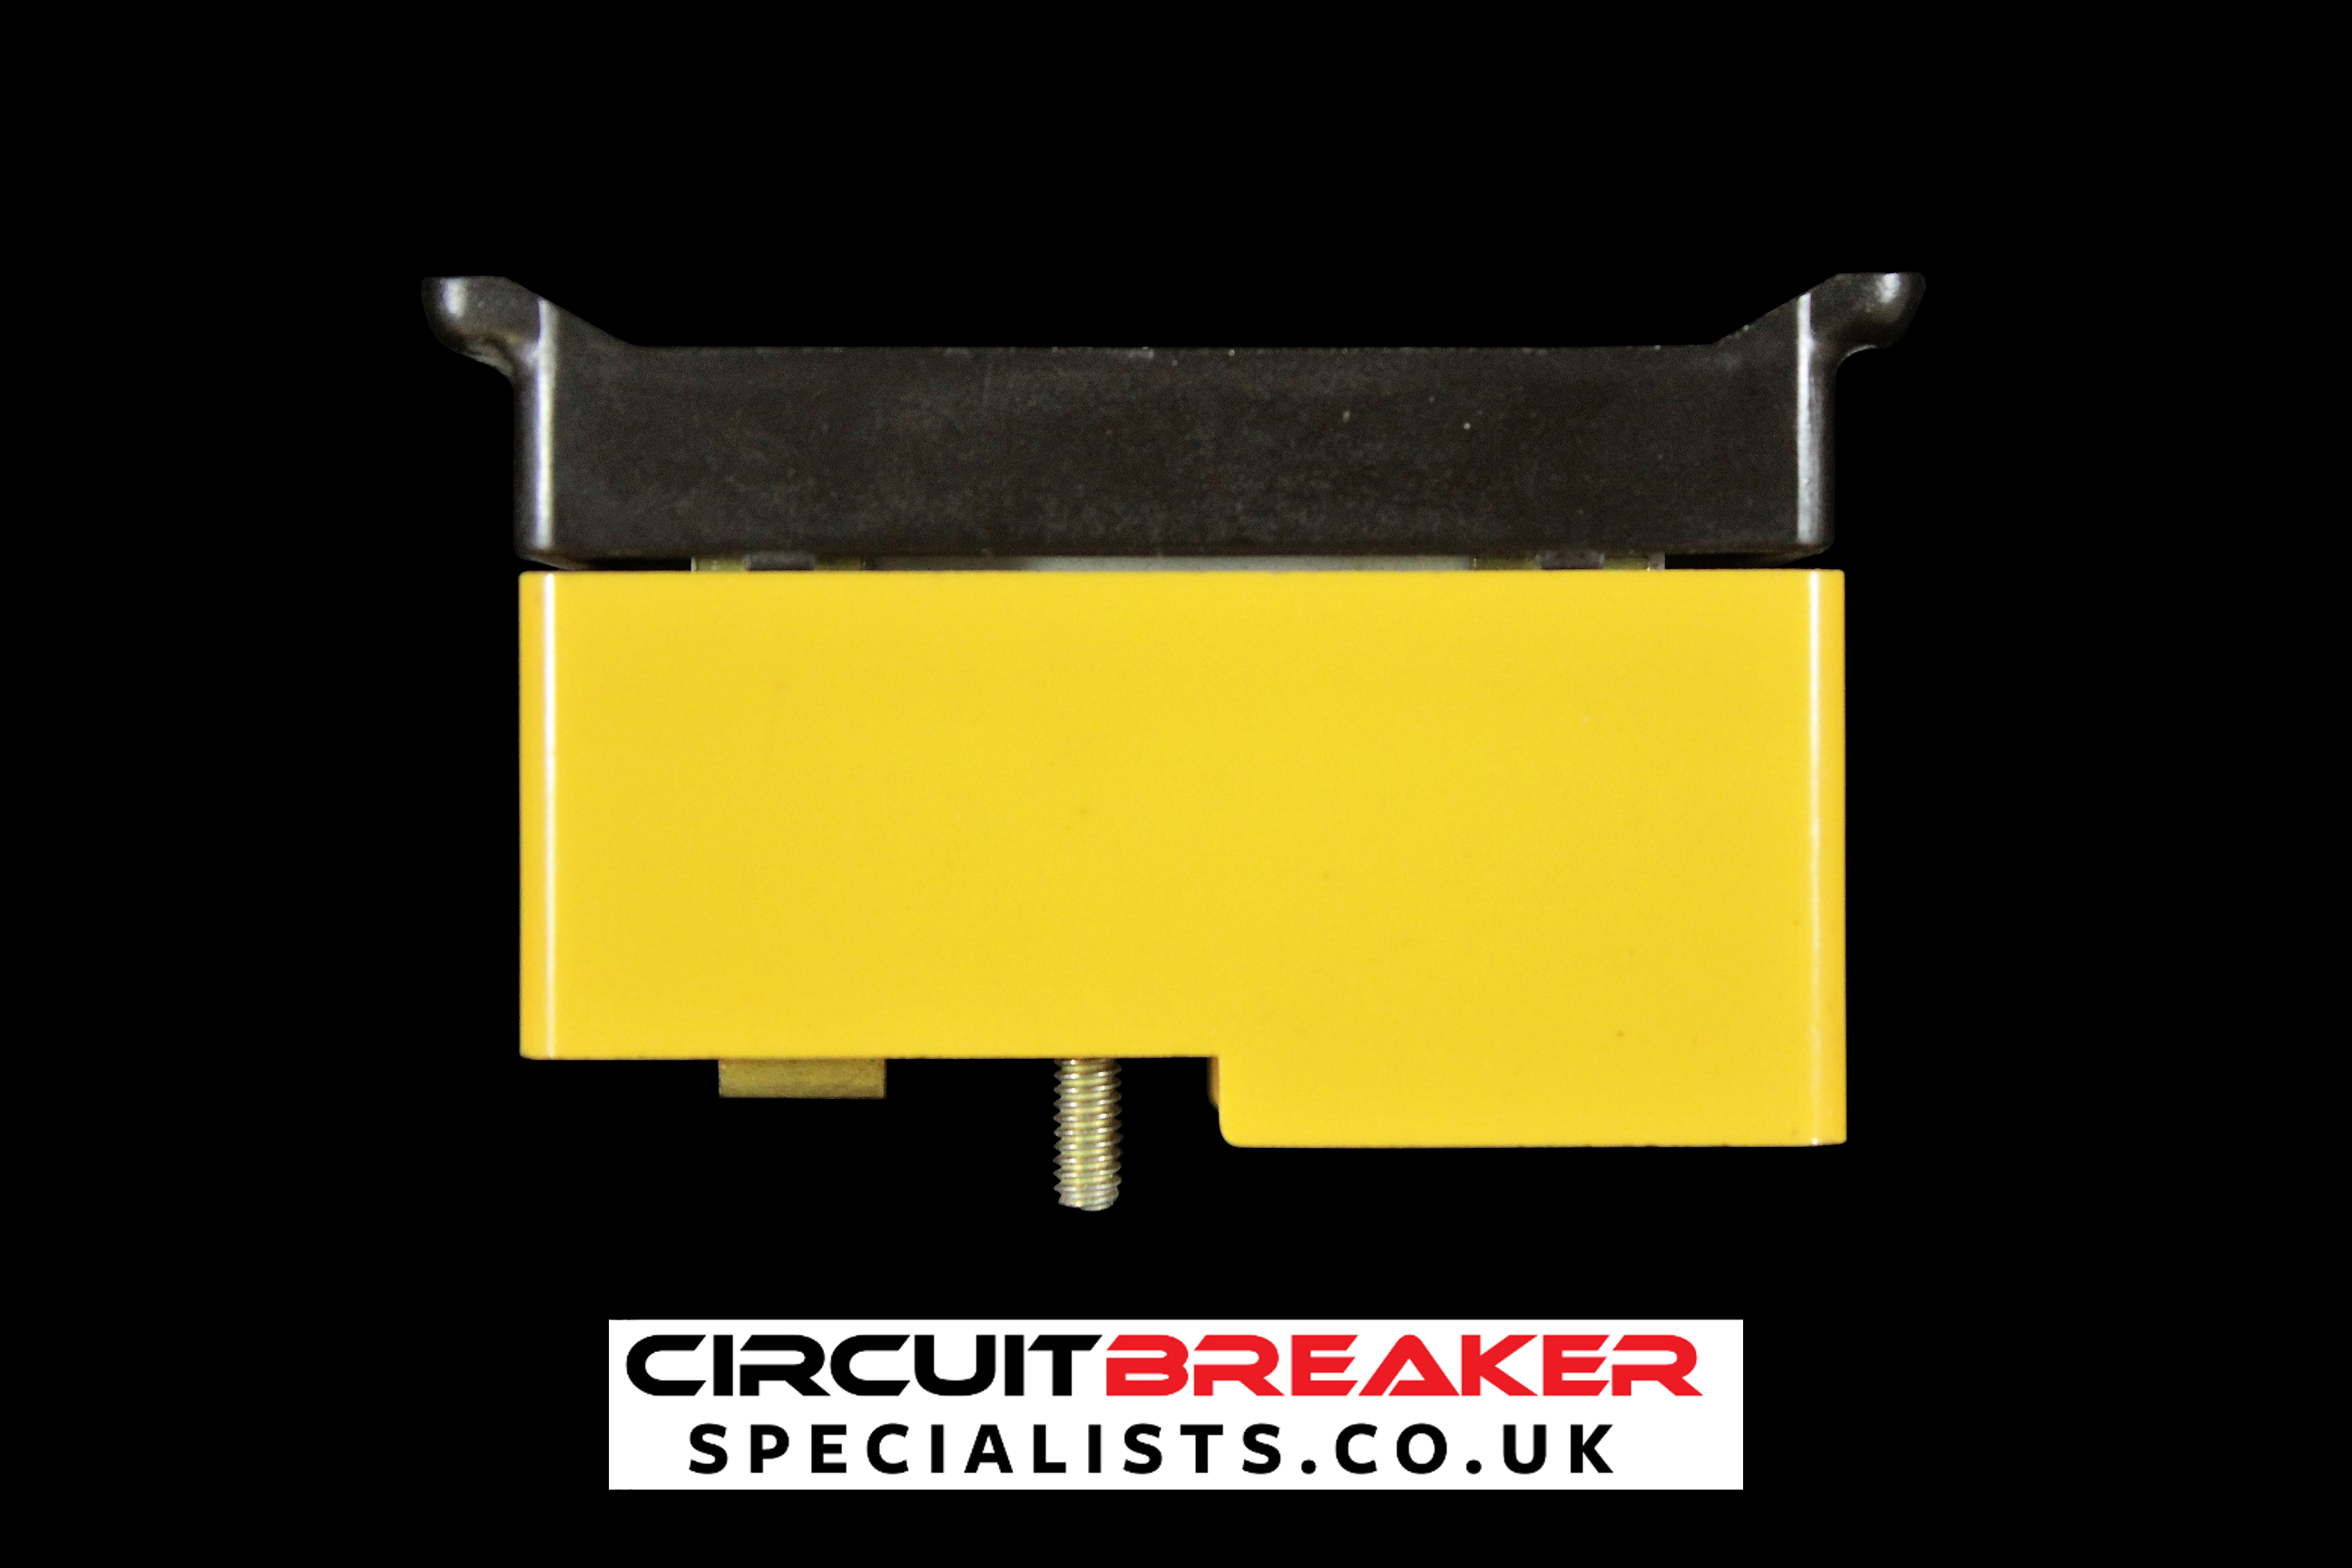 WYLEX REWIREABLE PUSH PLUG IN FUSE WIRE CARRIER 20 AMP A YELLOW ...